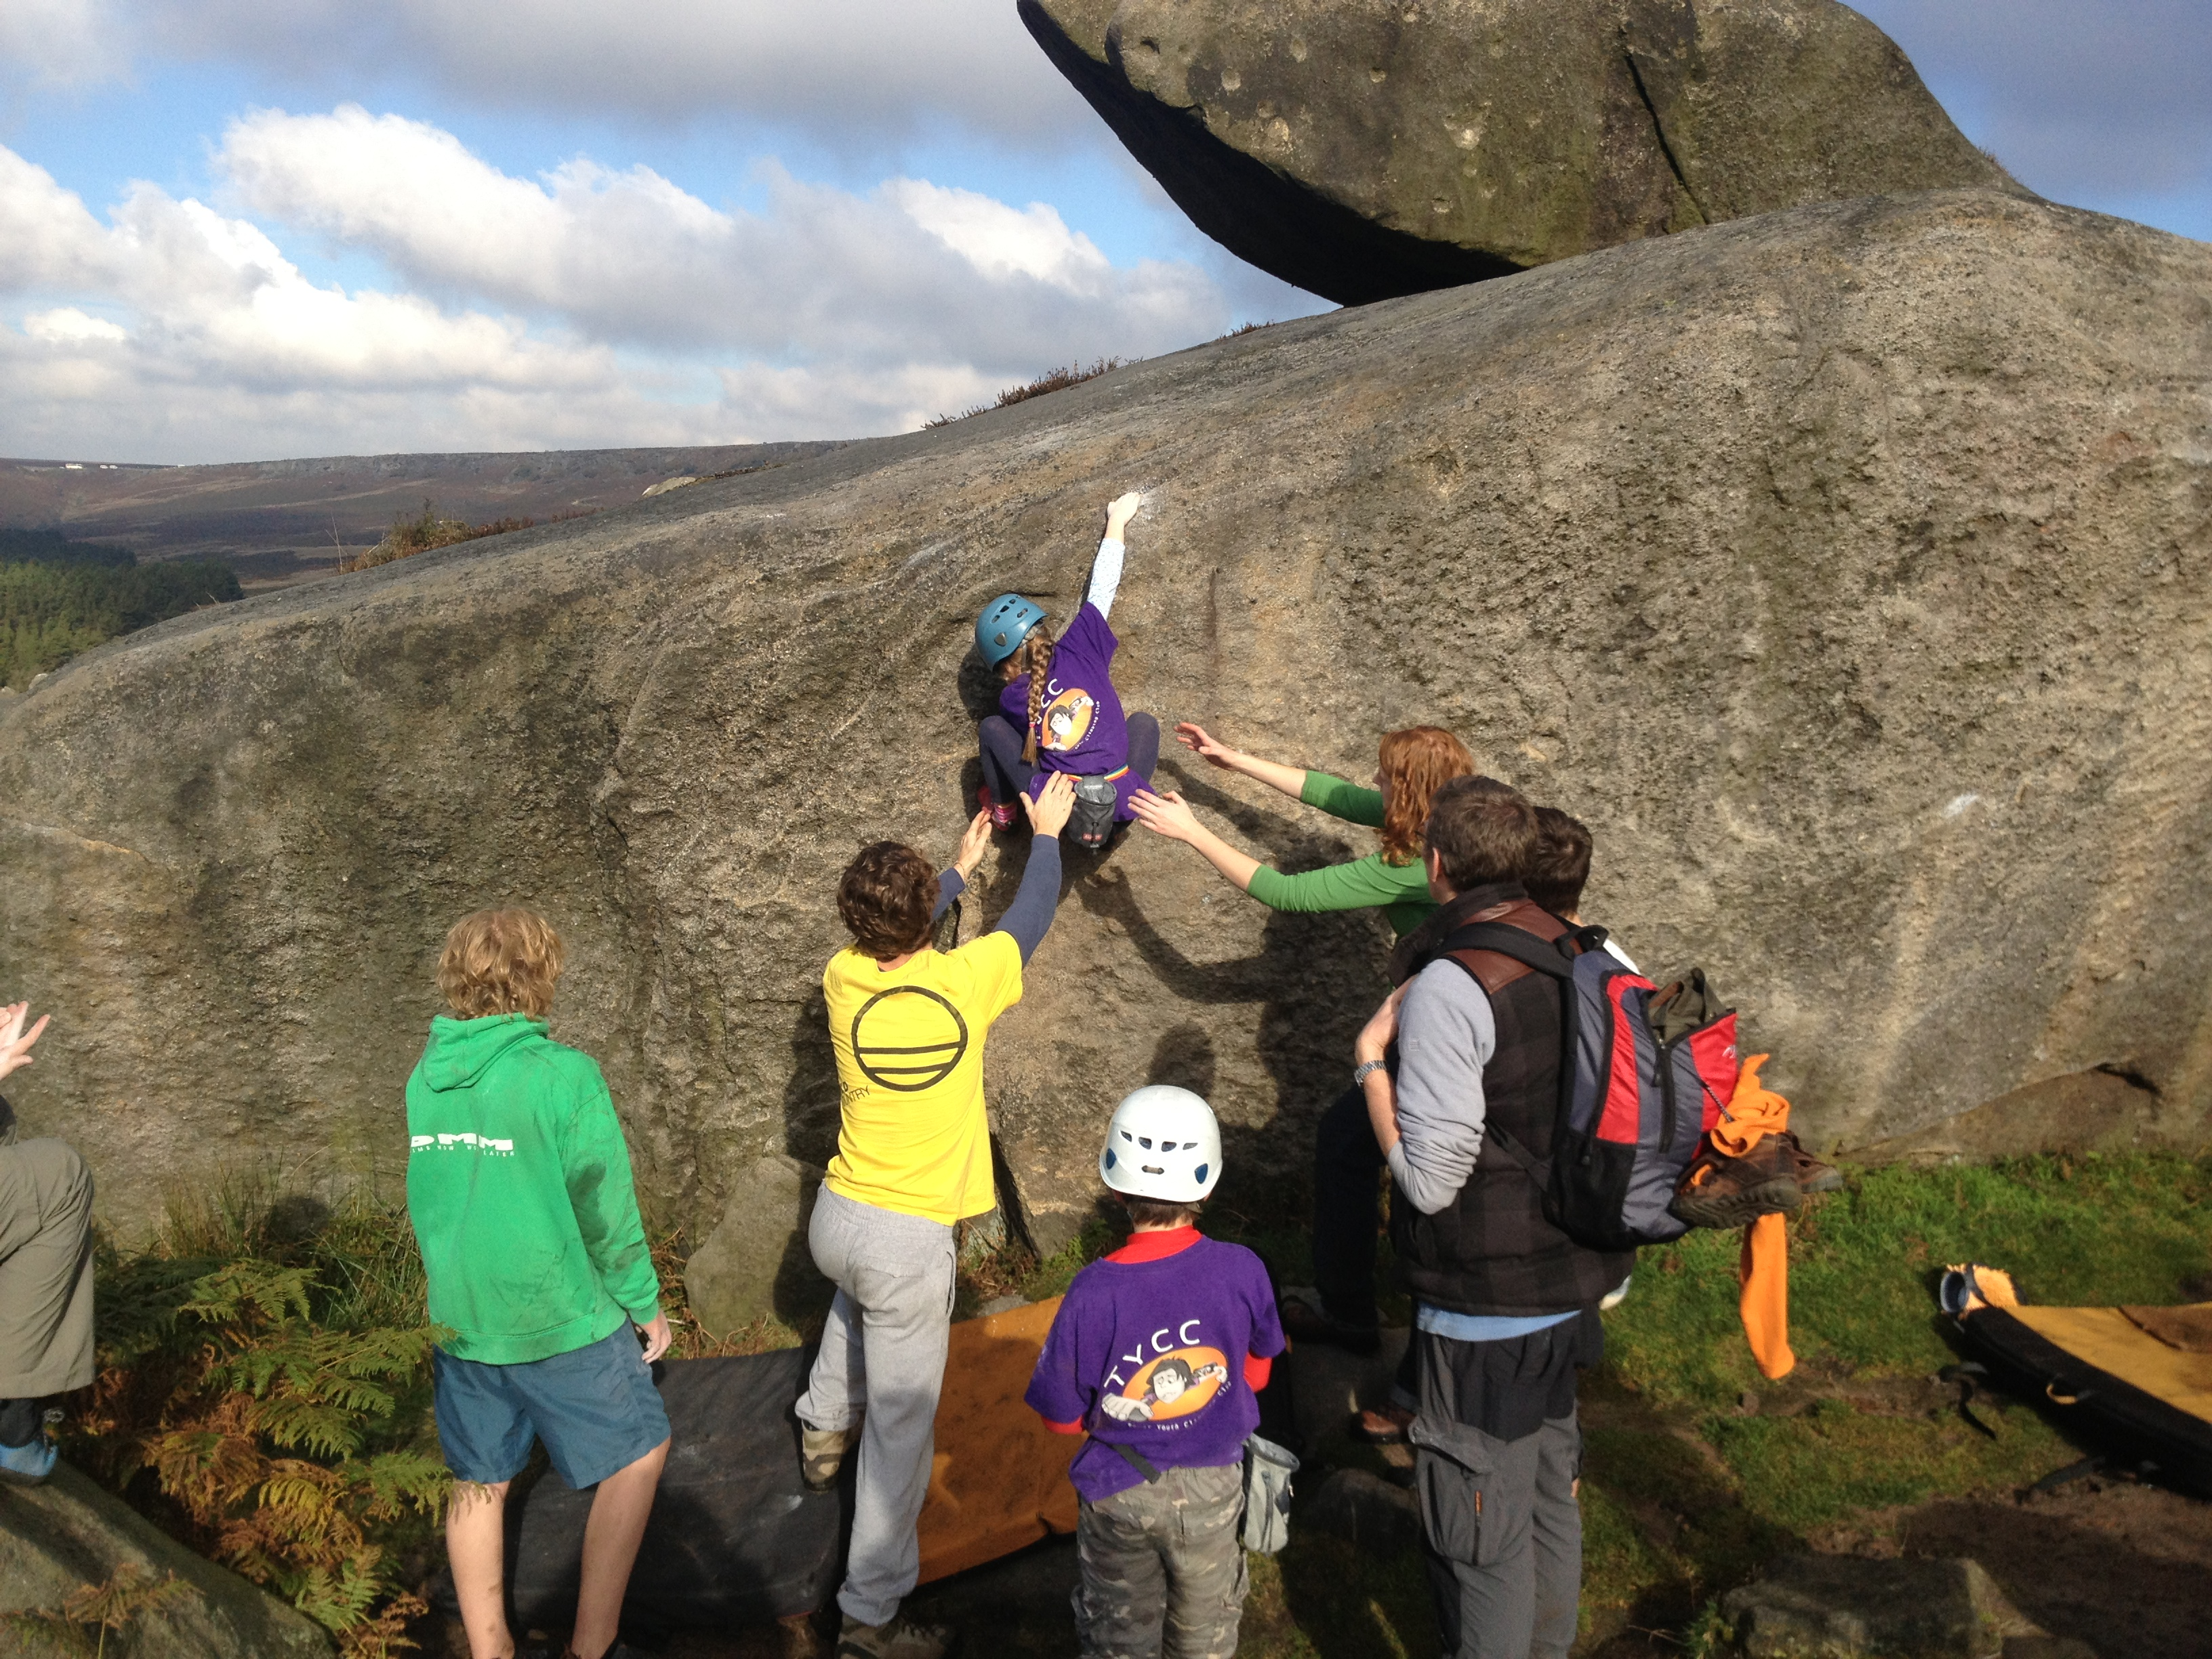 Tower Youth Climbing Club